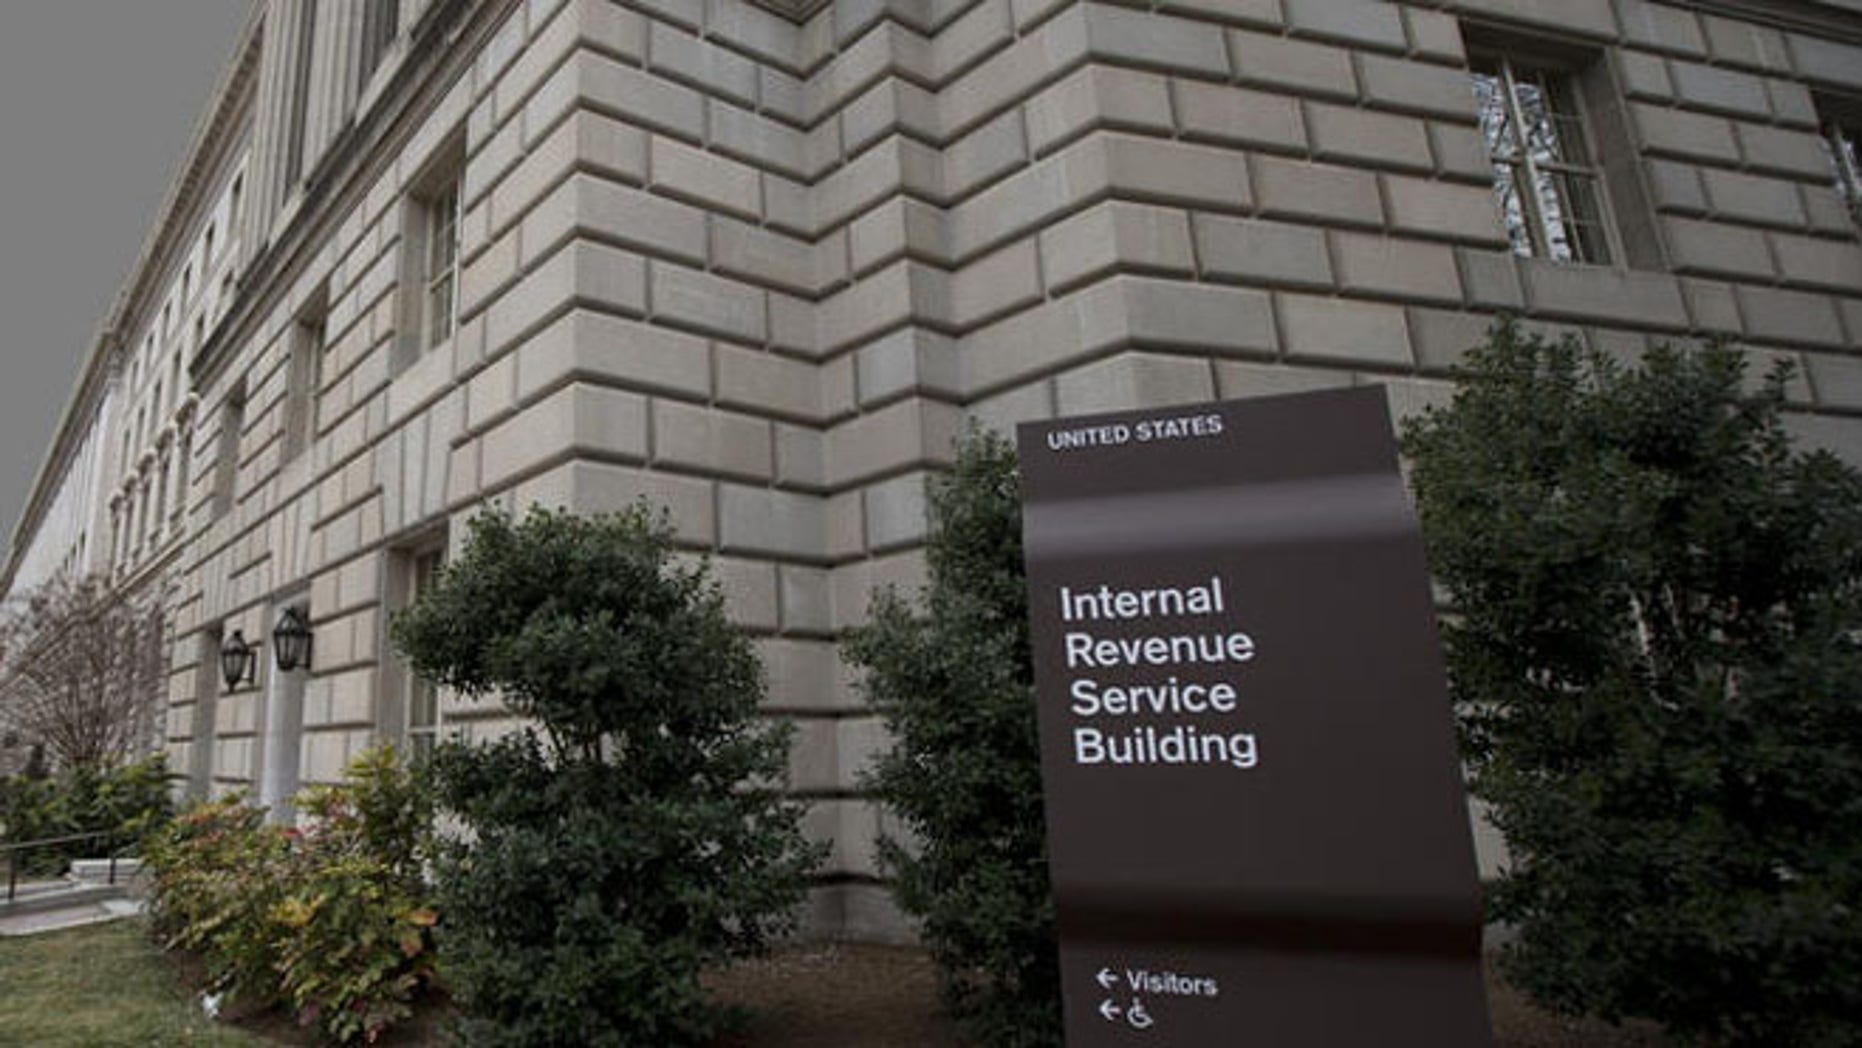 Shown here is the IRS headquarters in Washington, D.C.